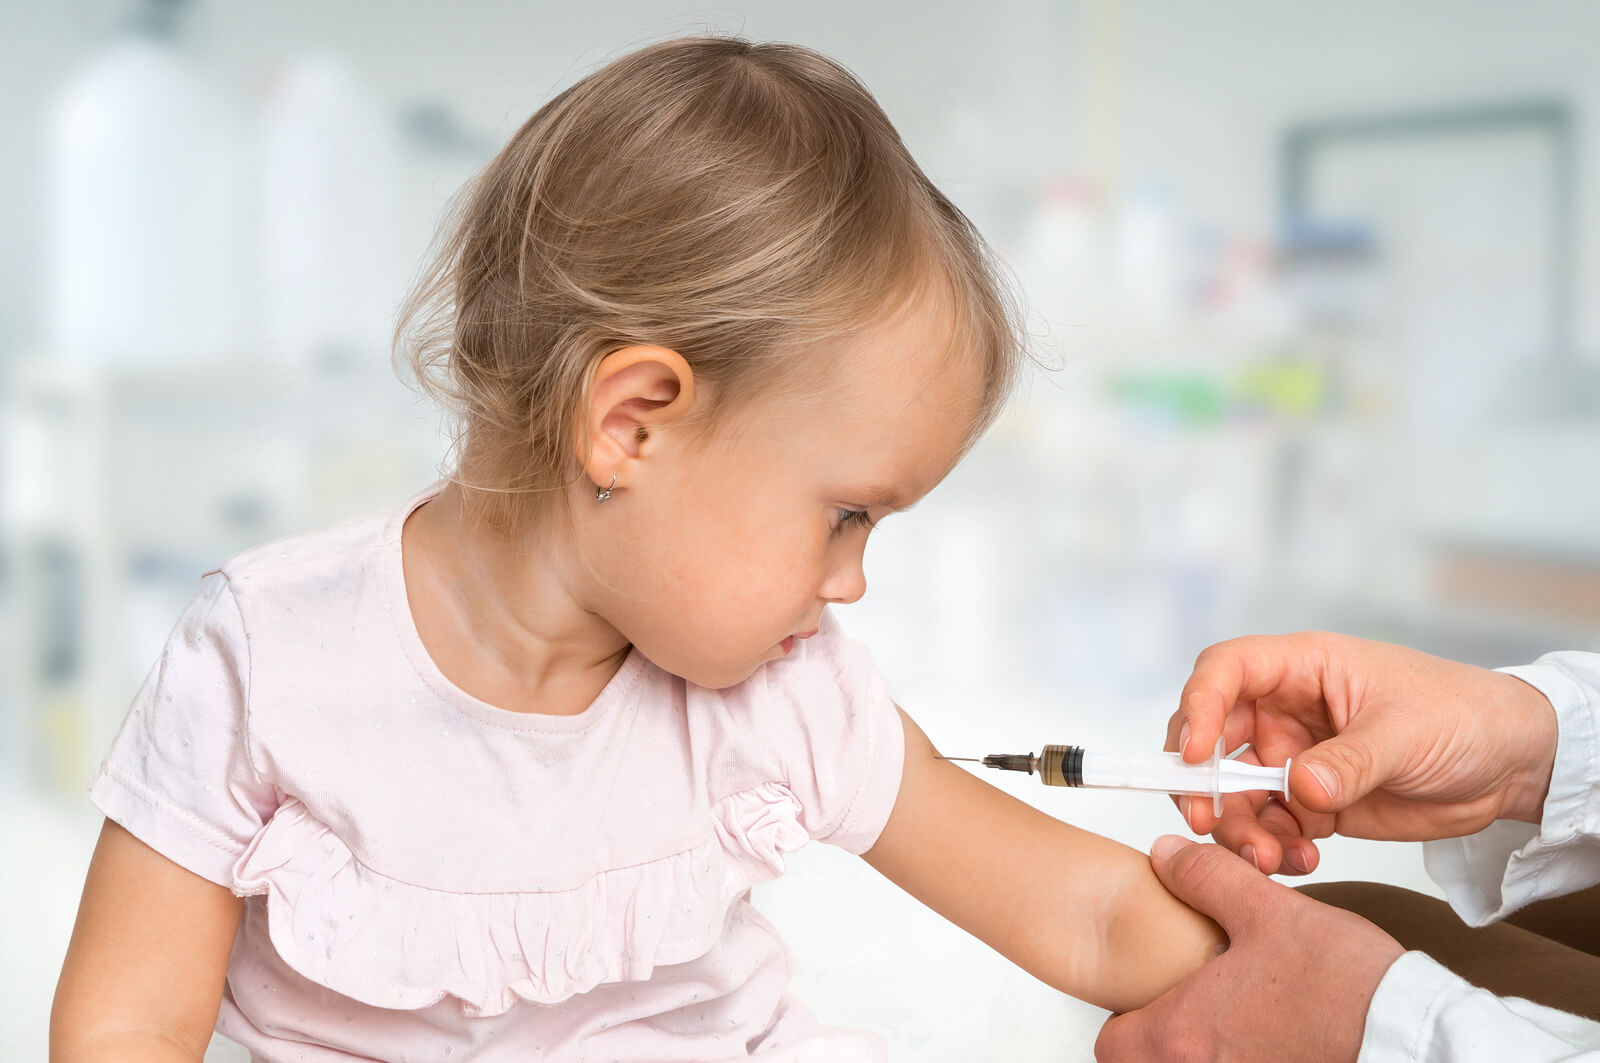 Hear Me Now: One Pharmacist's Opinion on Mandatory Vaccines